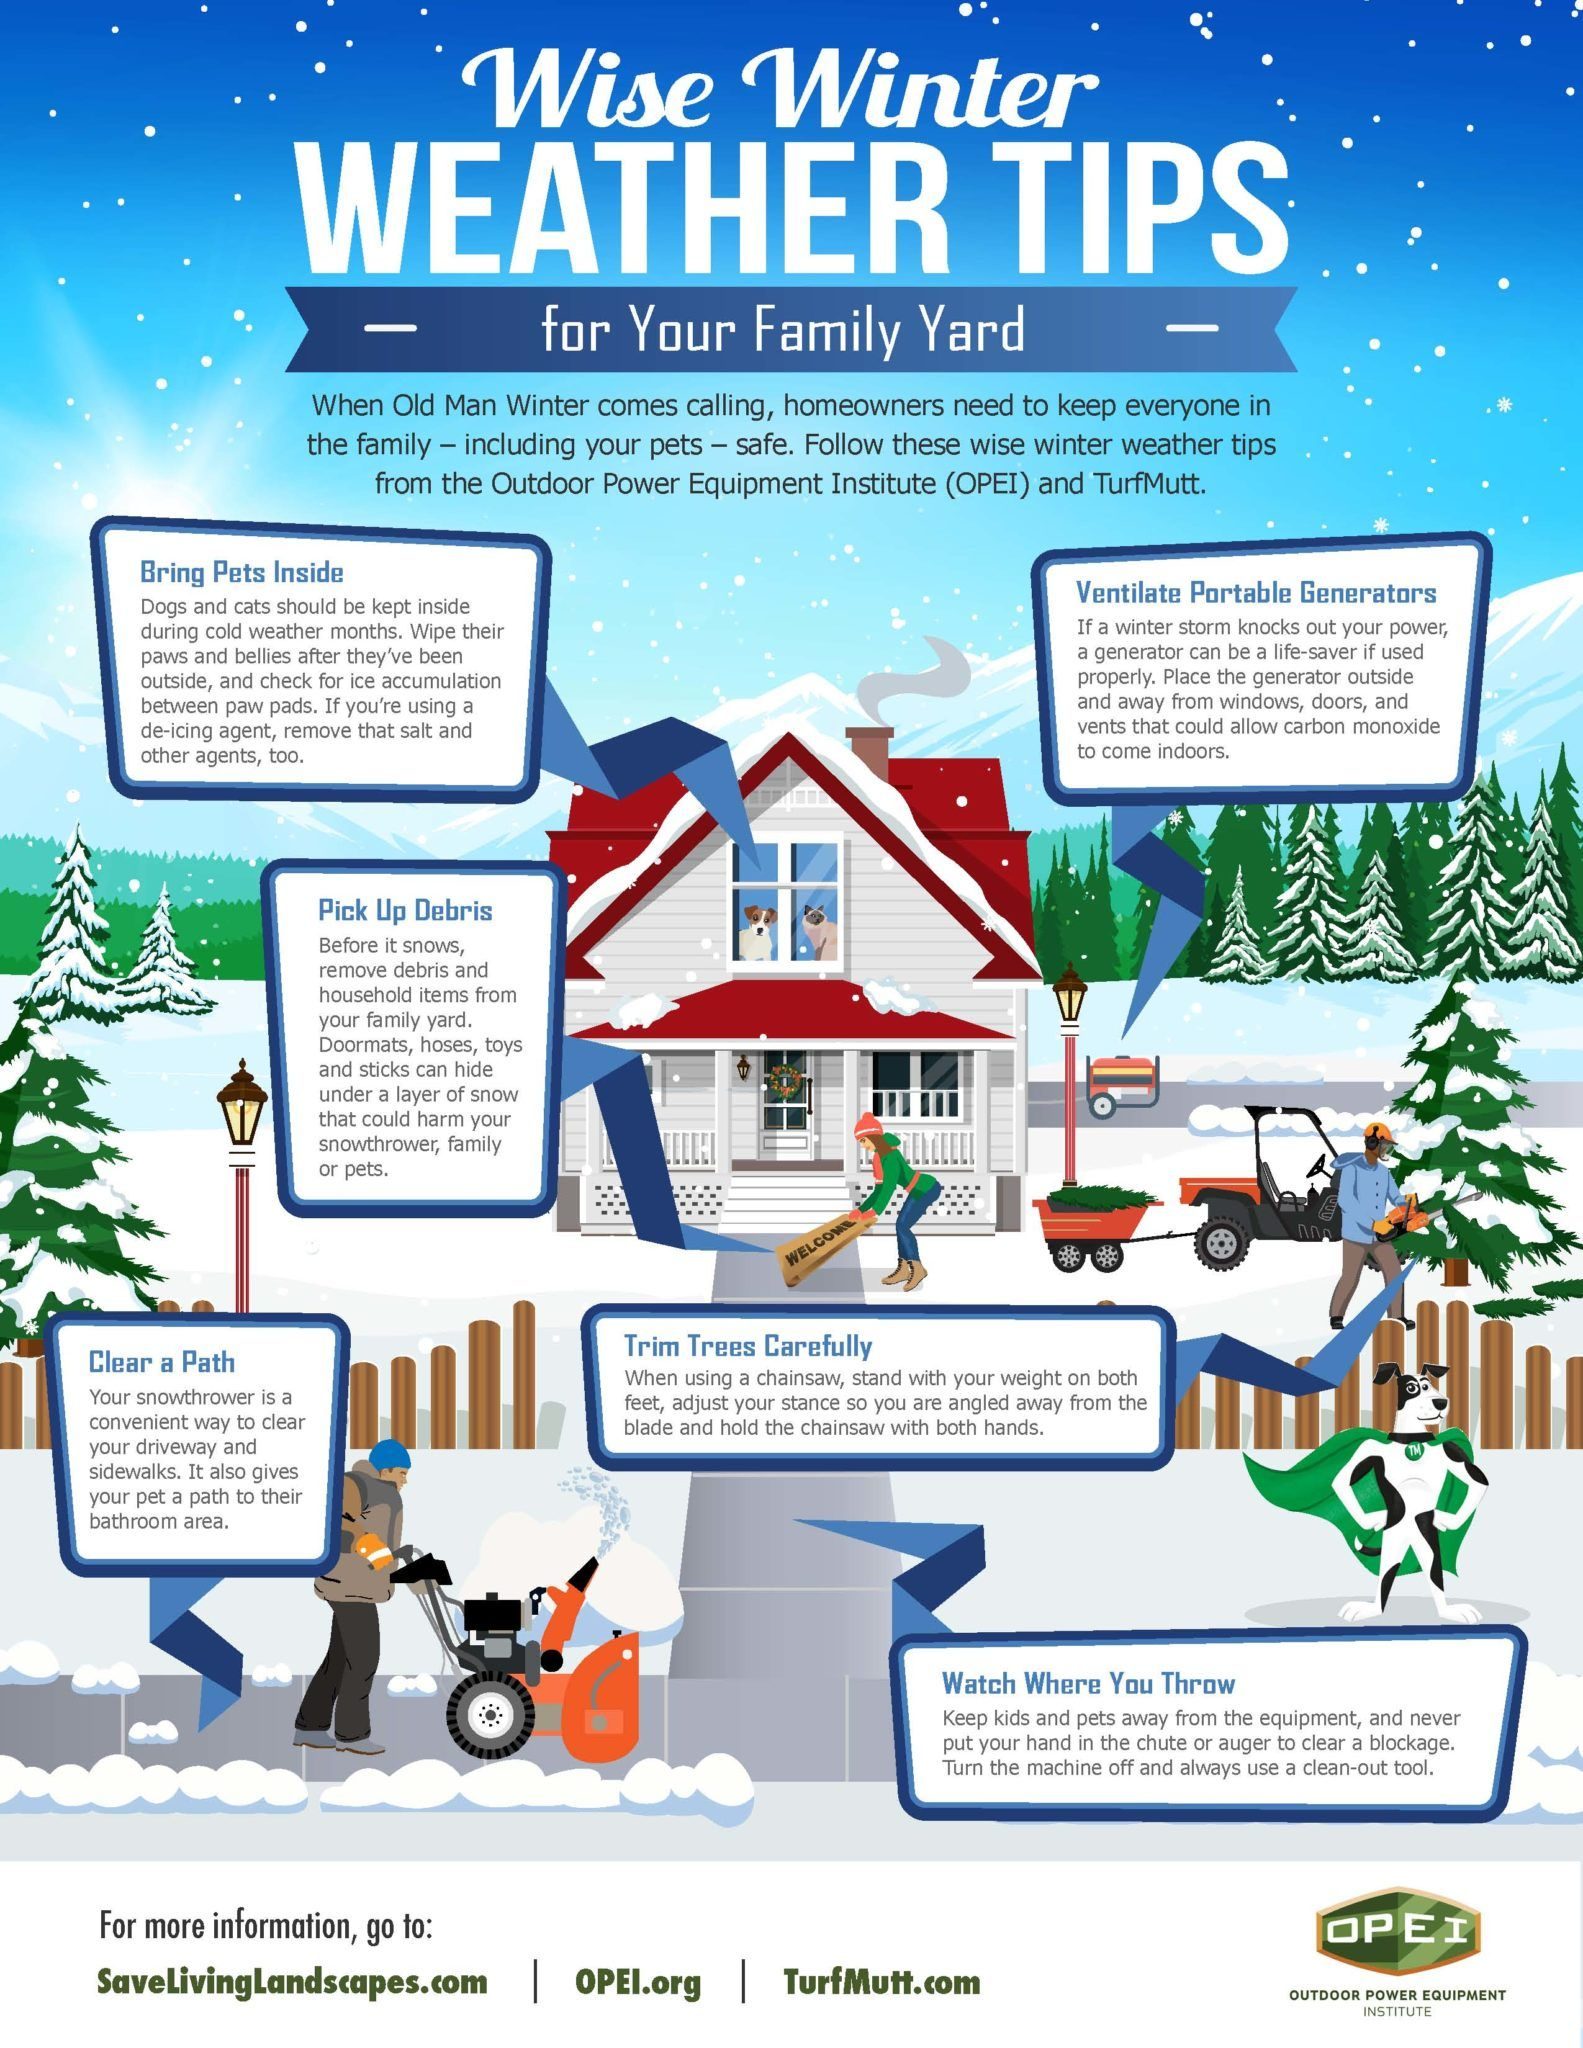 Wise Winter Weather Tips for Your Family Yard Infographic